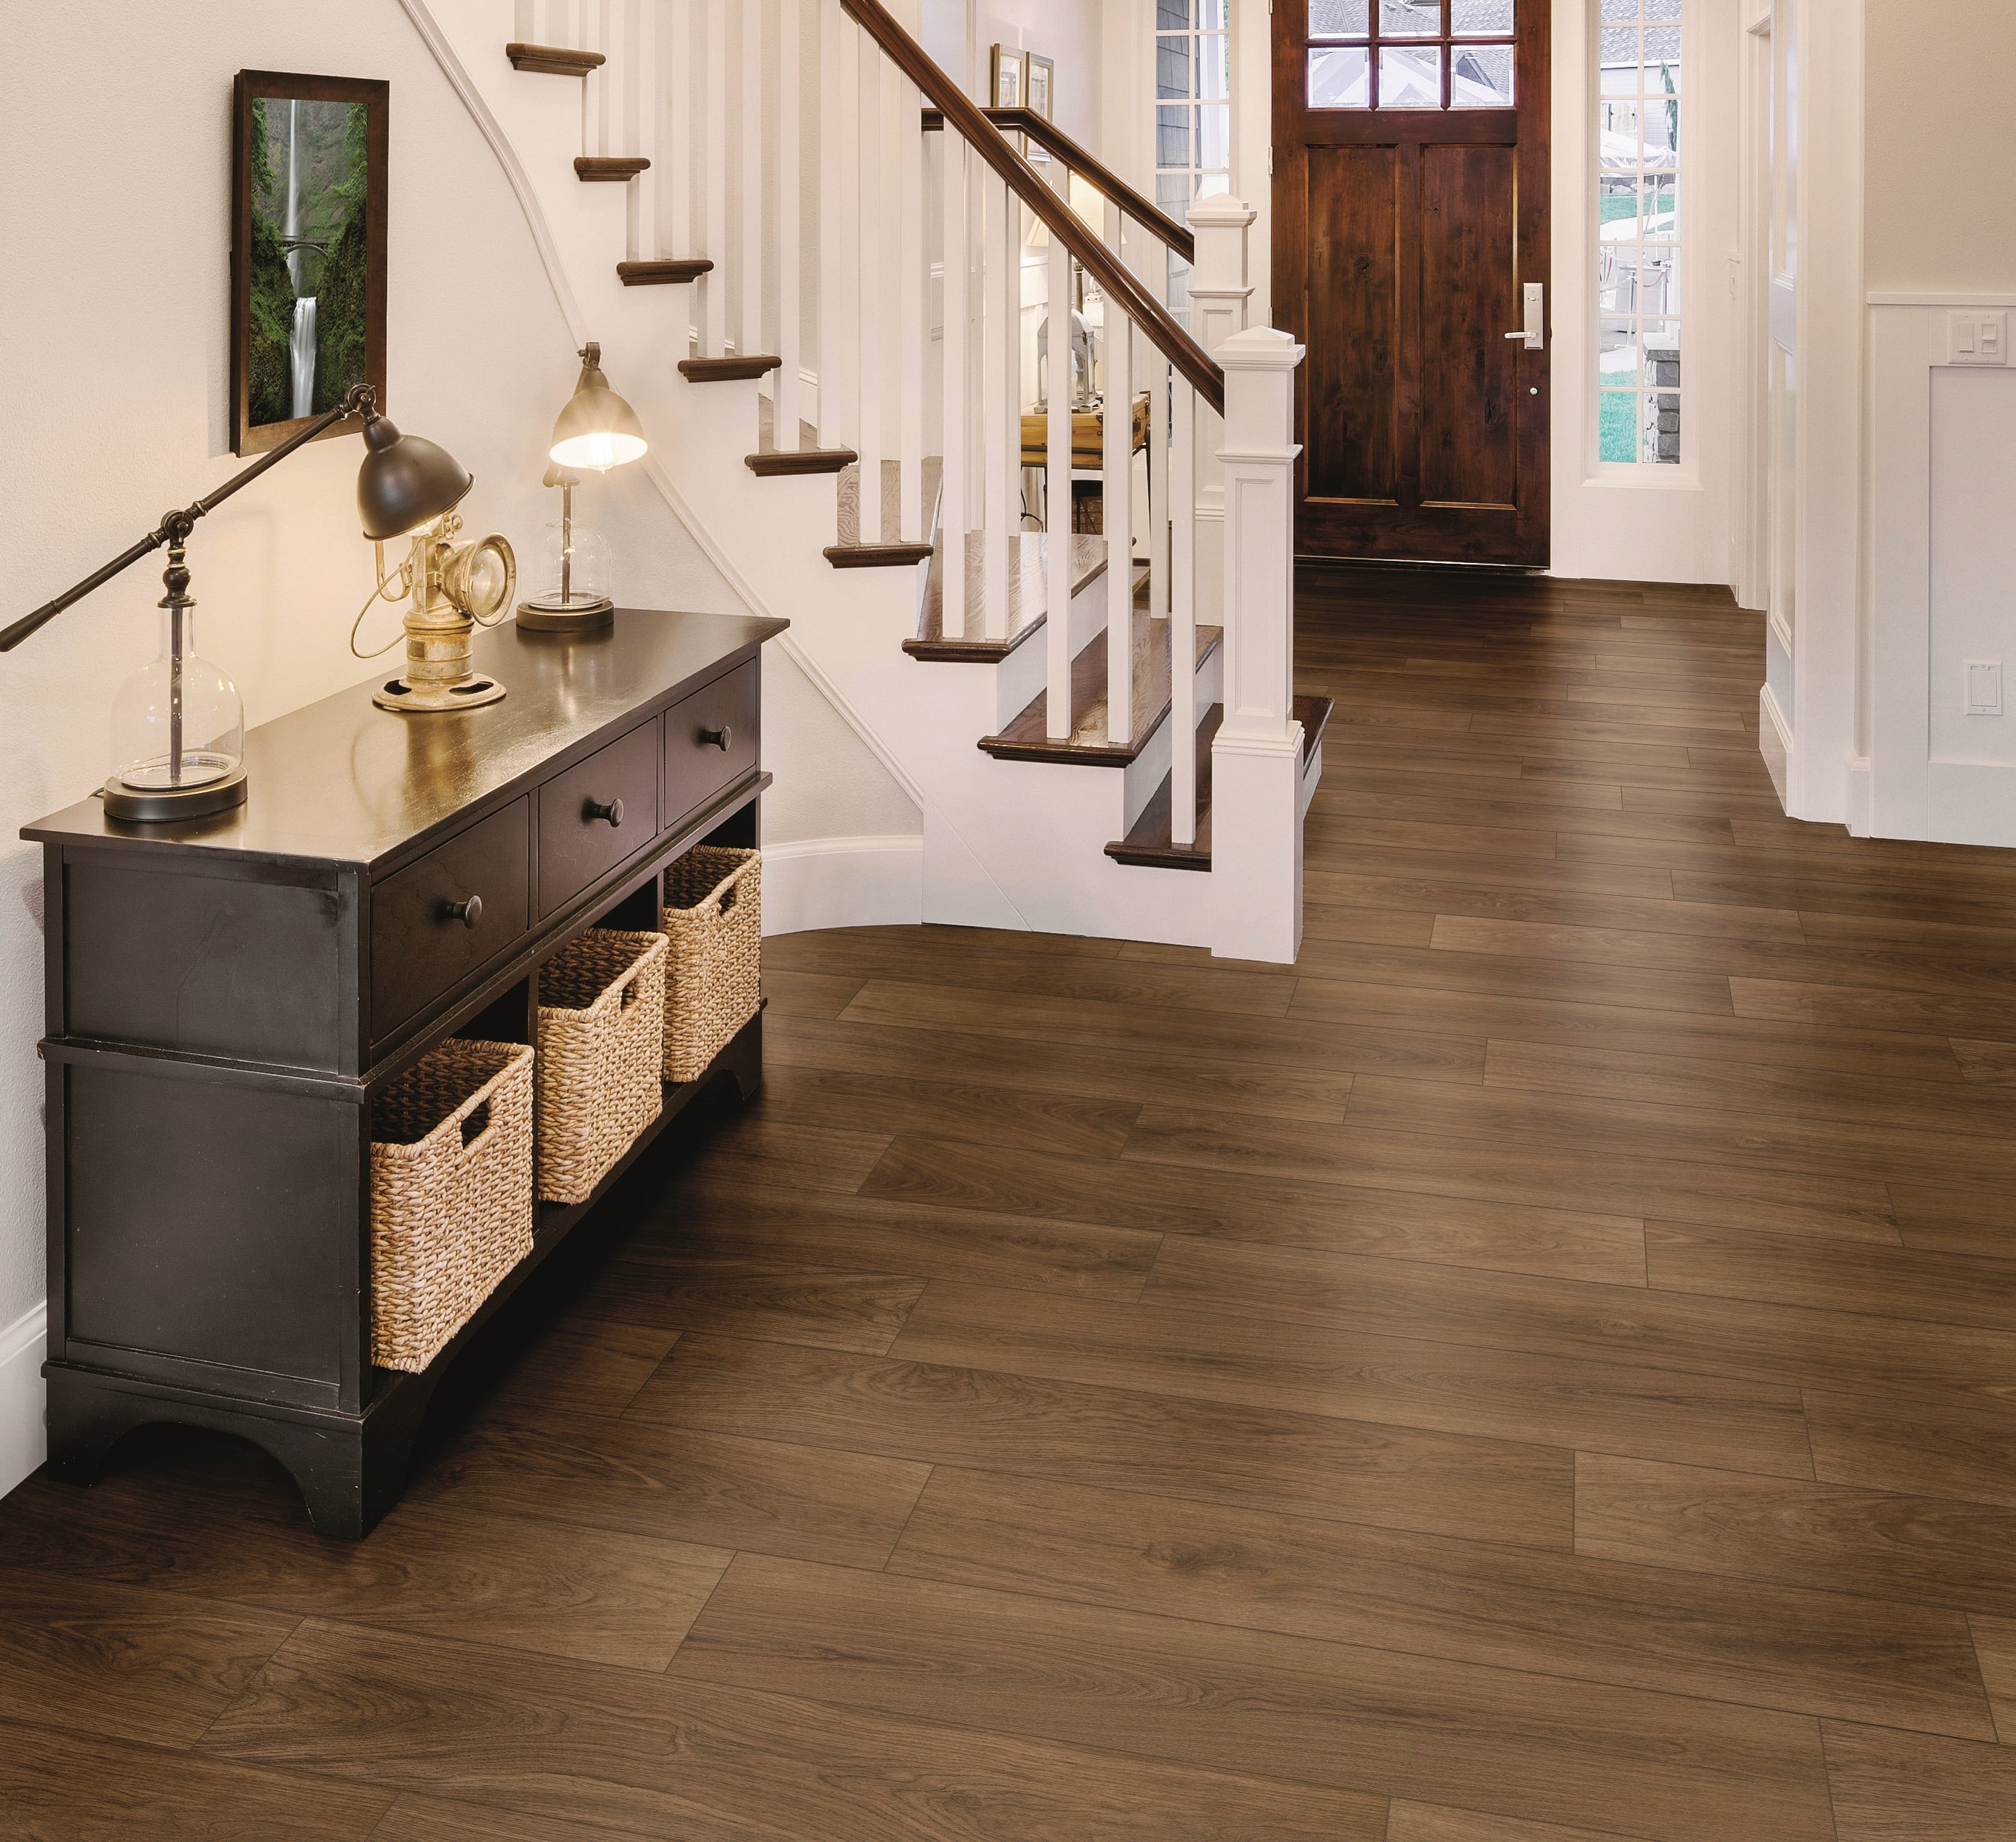 Why Are Homeowners Choosing Porcelain Wood Look Tile